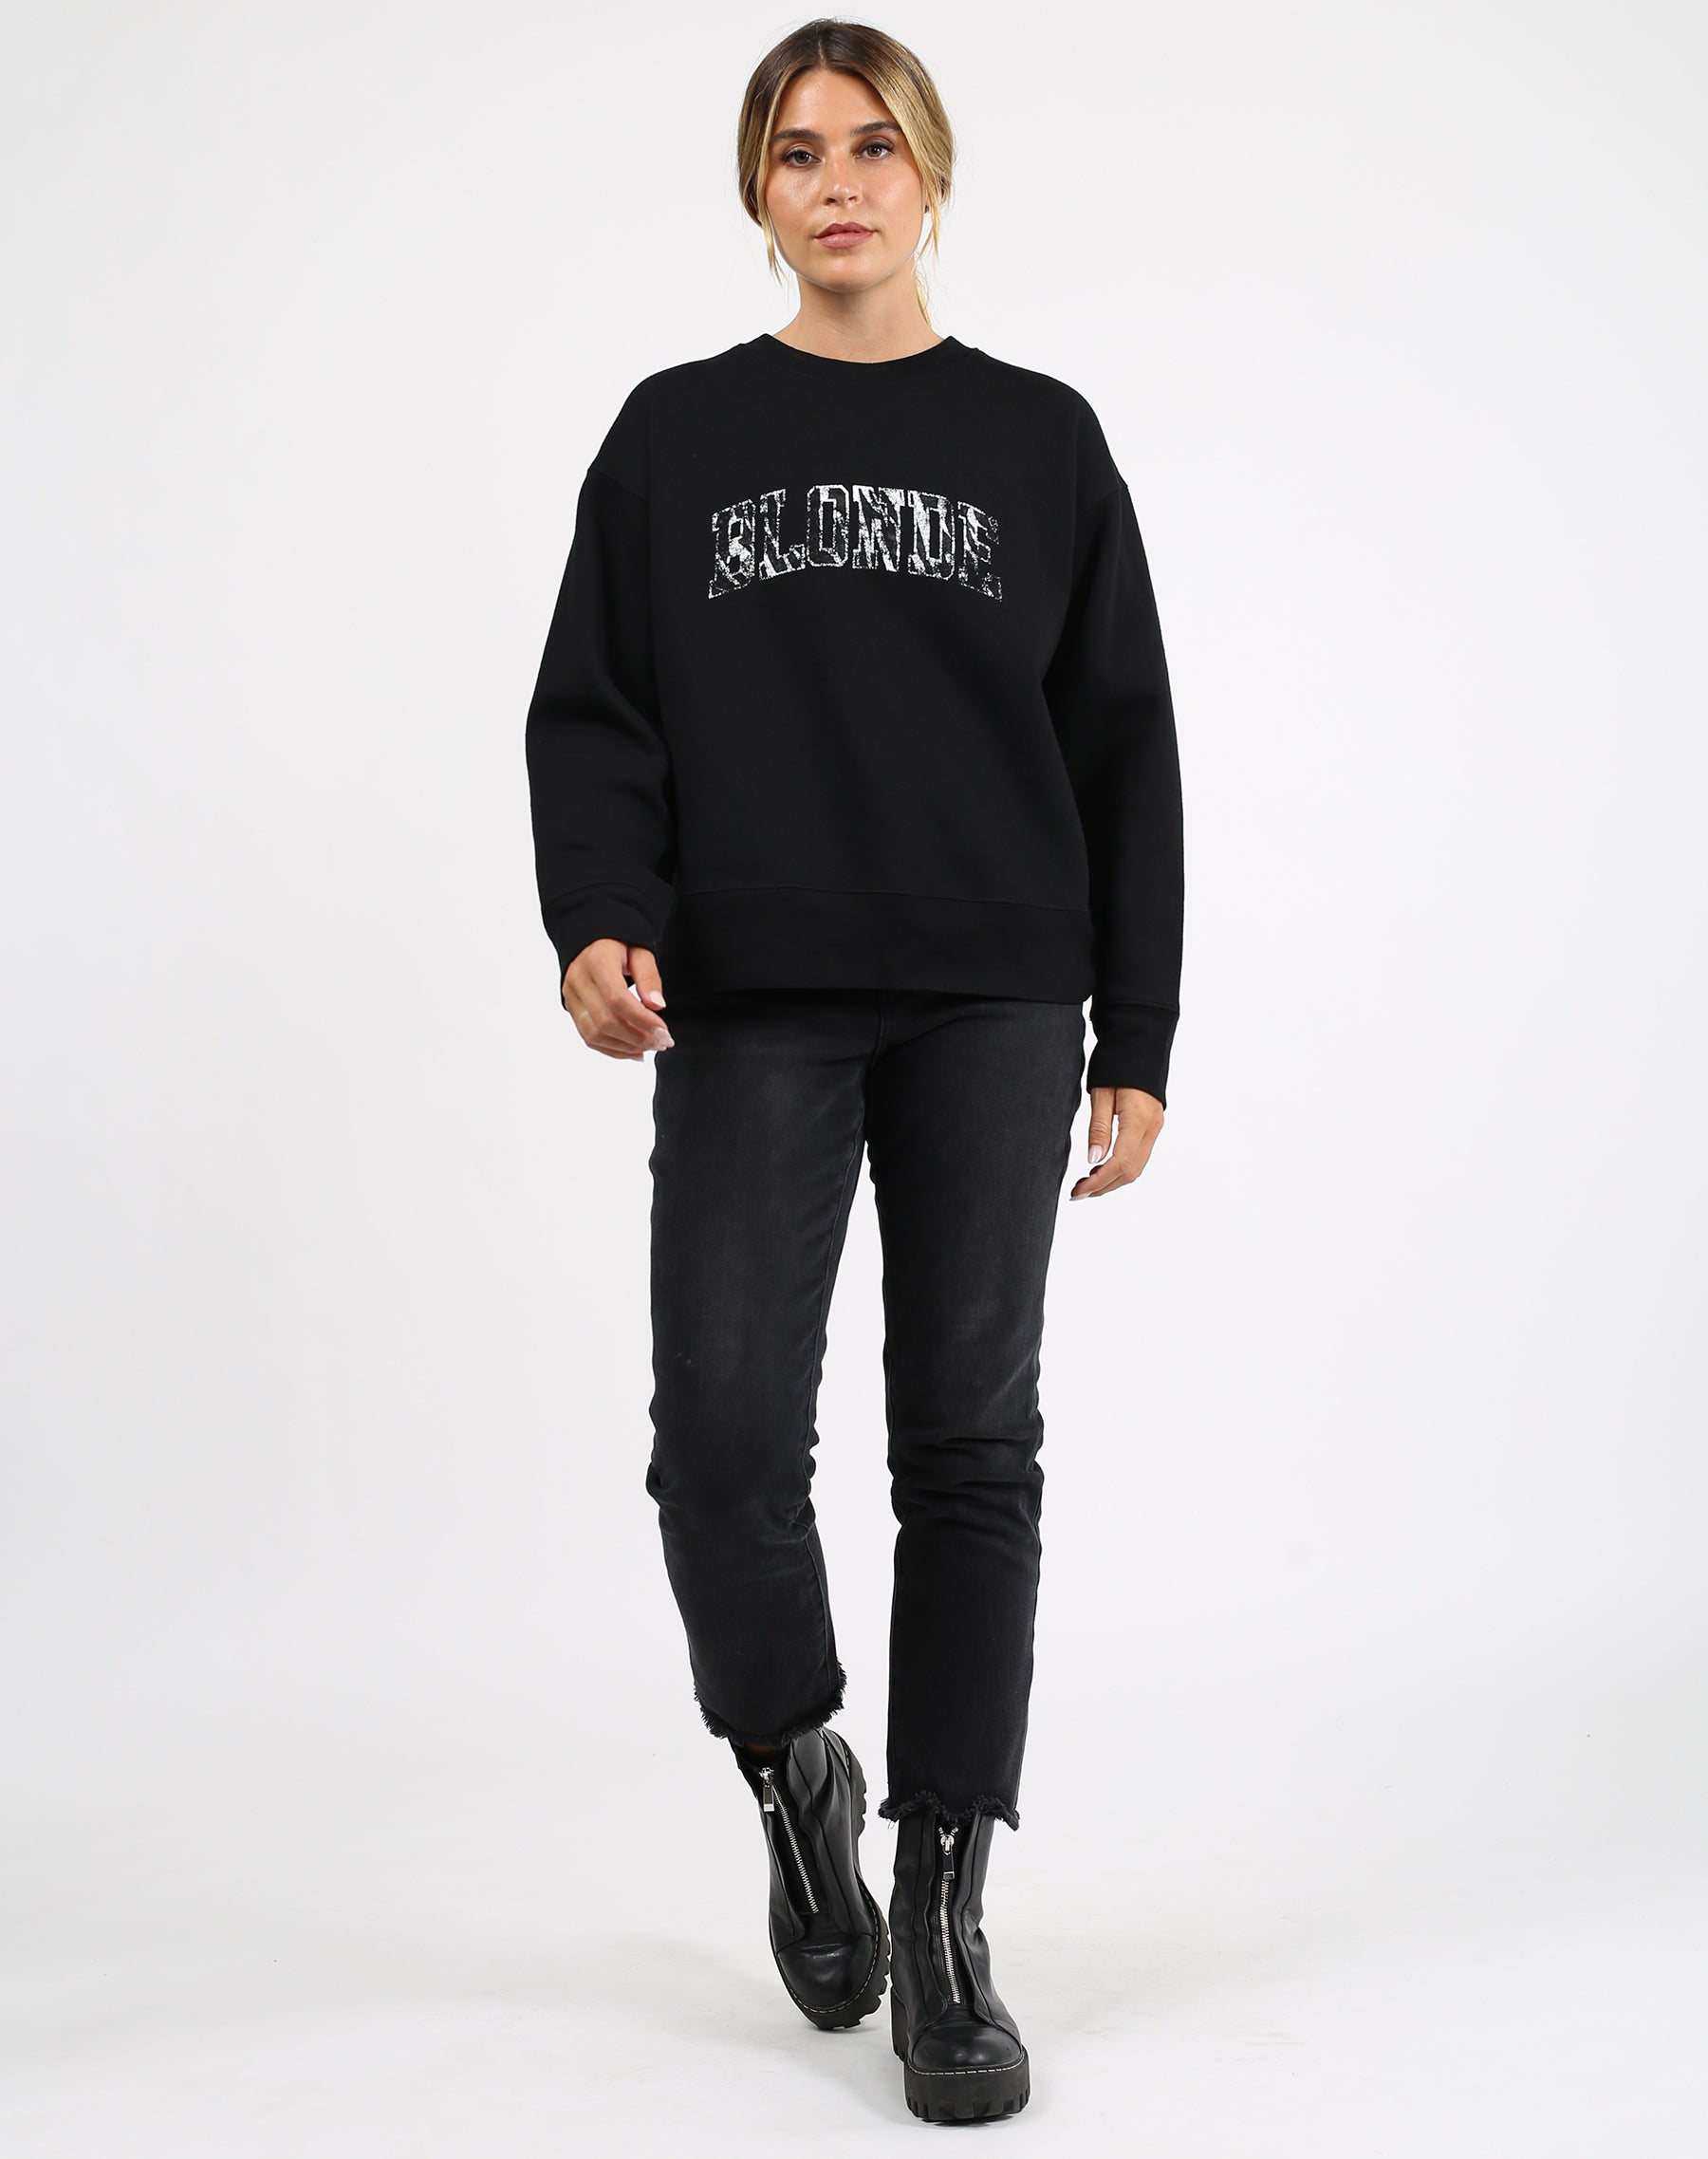 This is an image a model wearing the Blonde Zebra Varsity Step Sister Crew Neck Sweatshirt in Black by Brunette the Label.